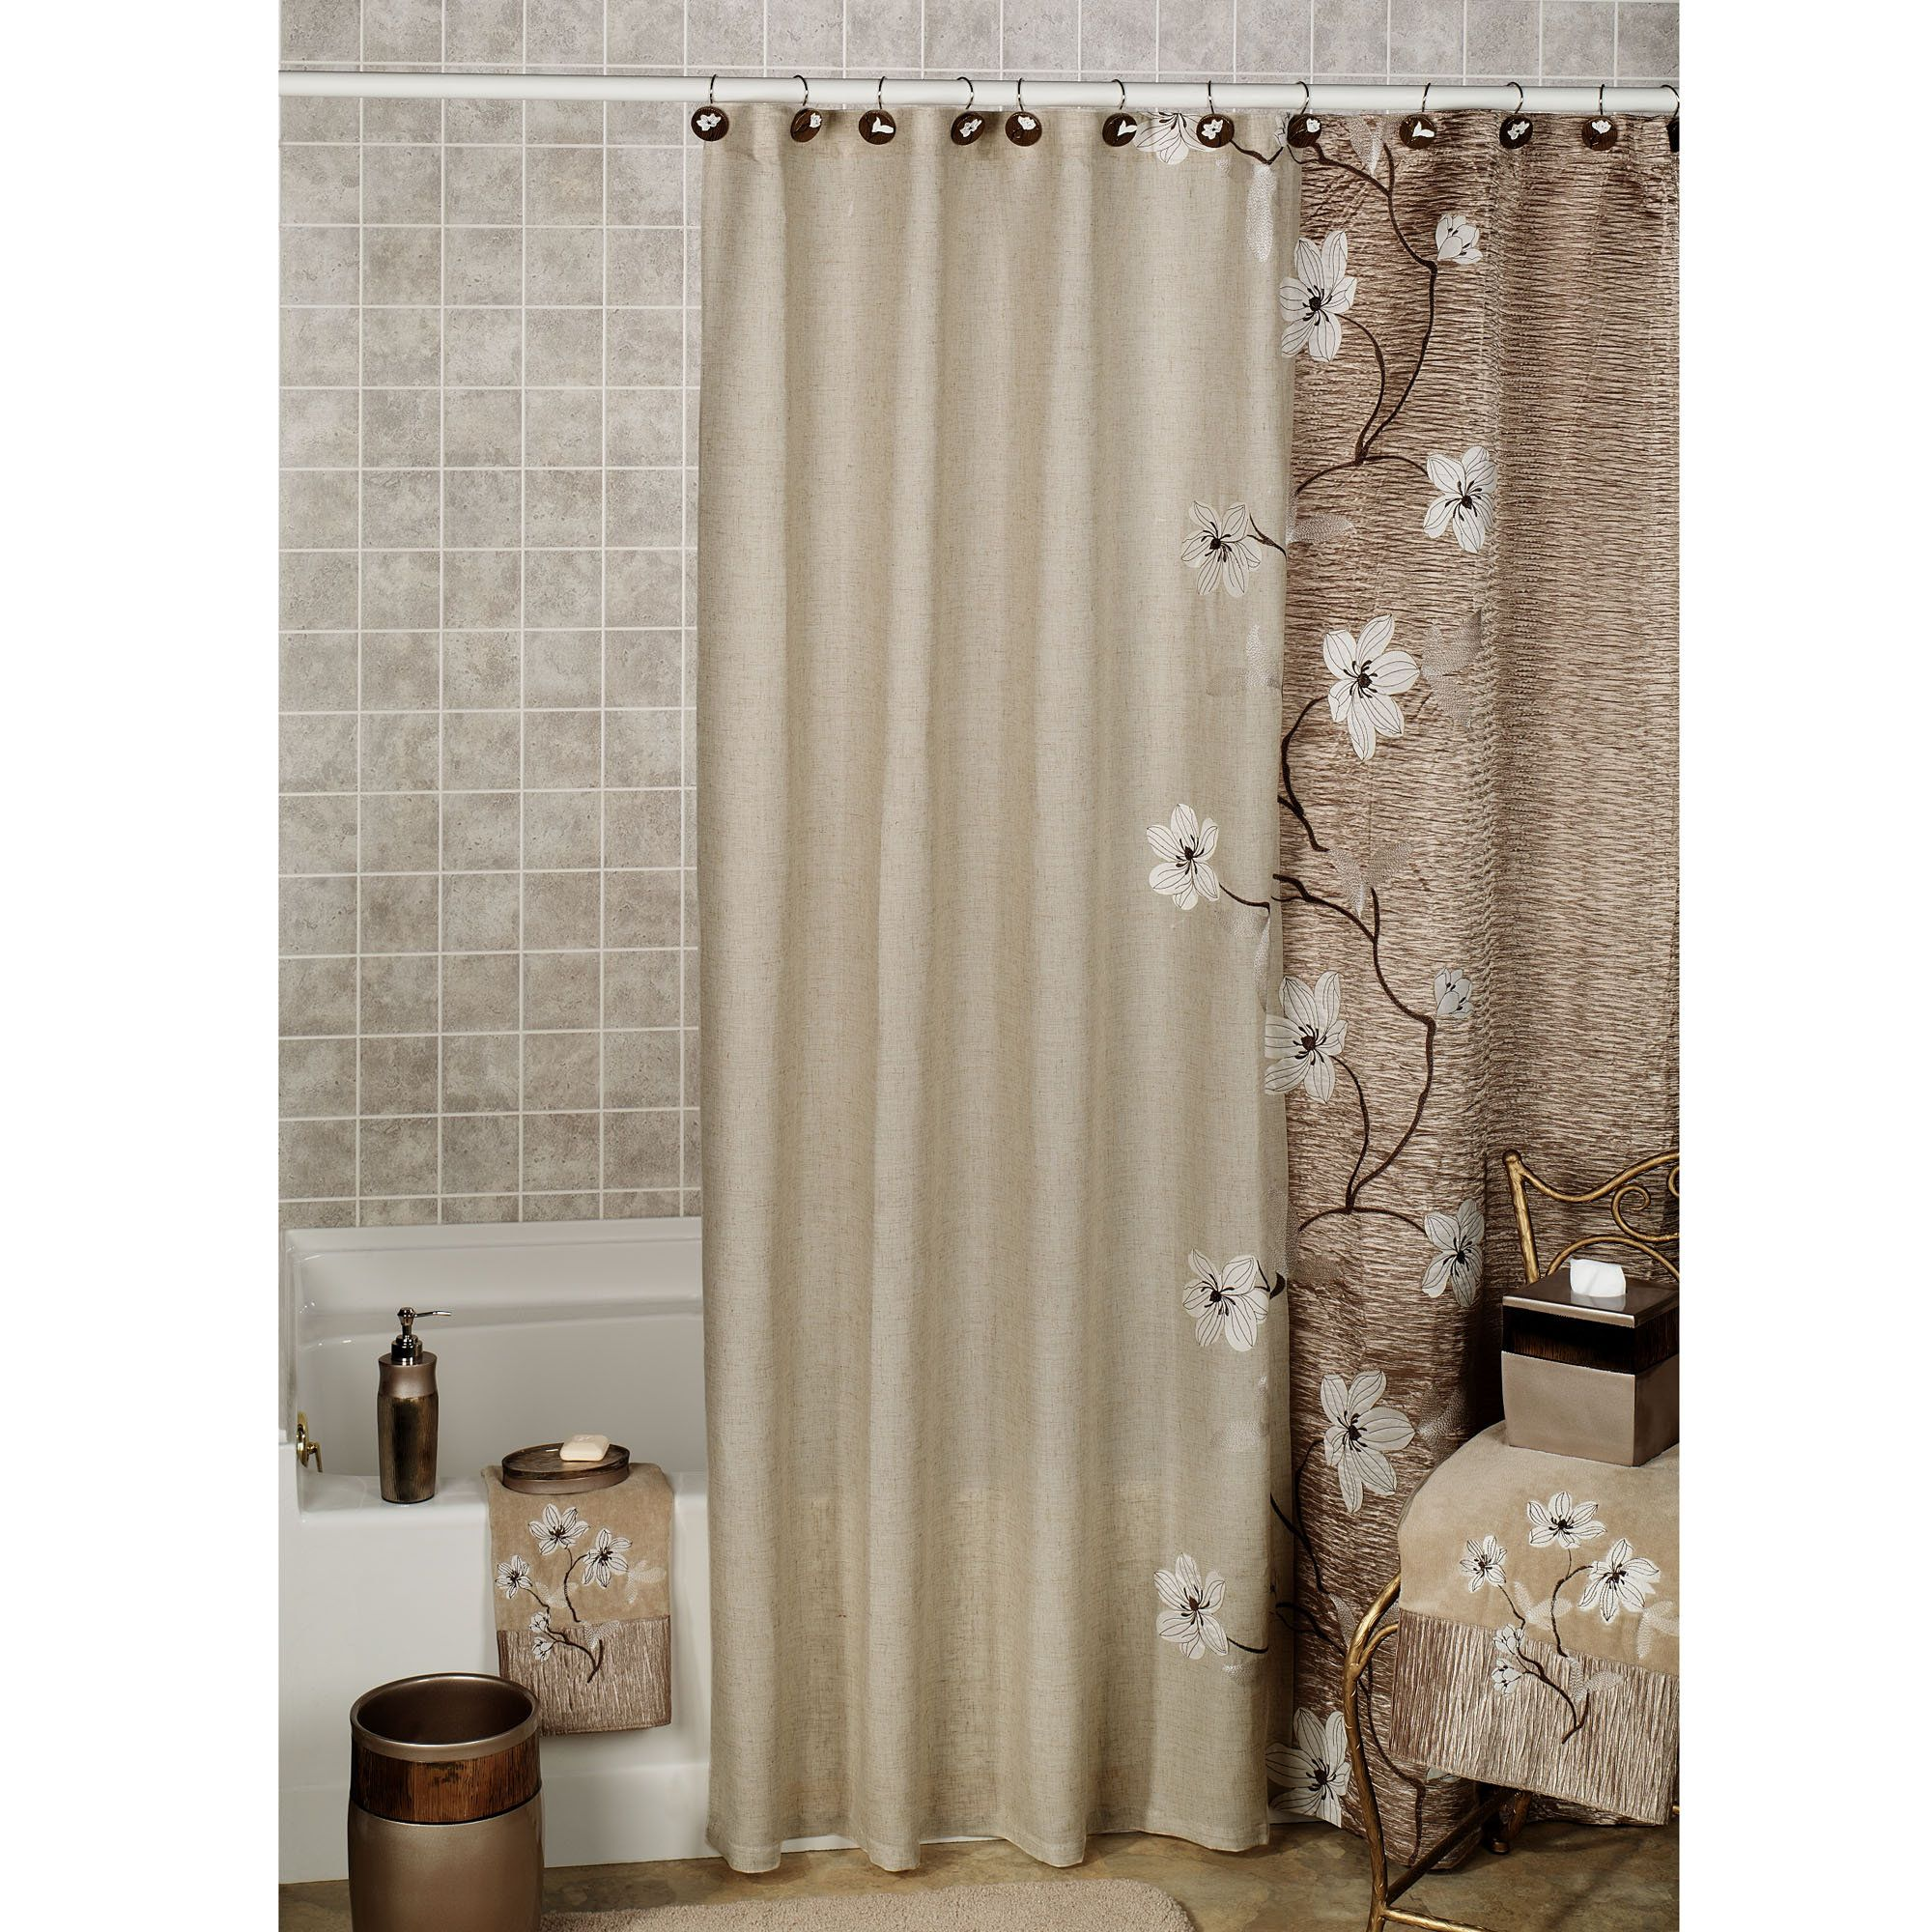 Magnolia Floral Shower Curtain By Croscill Long Shower Curtains